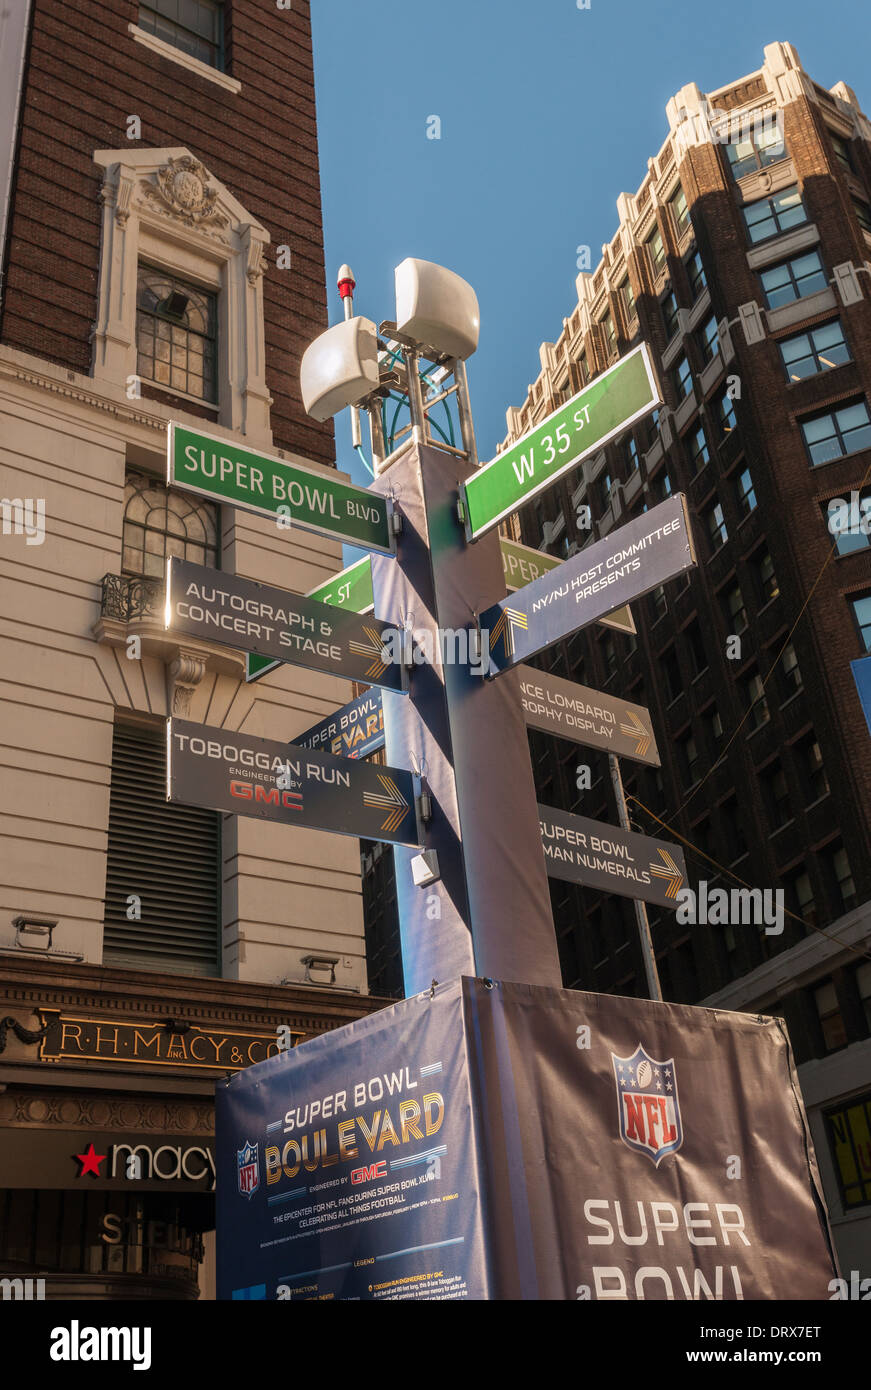 Wayfinding sign on Super Bowl Boulevard in Midtown Manhattan in New York - Stock Image